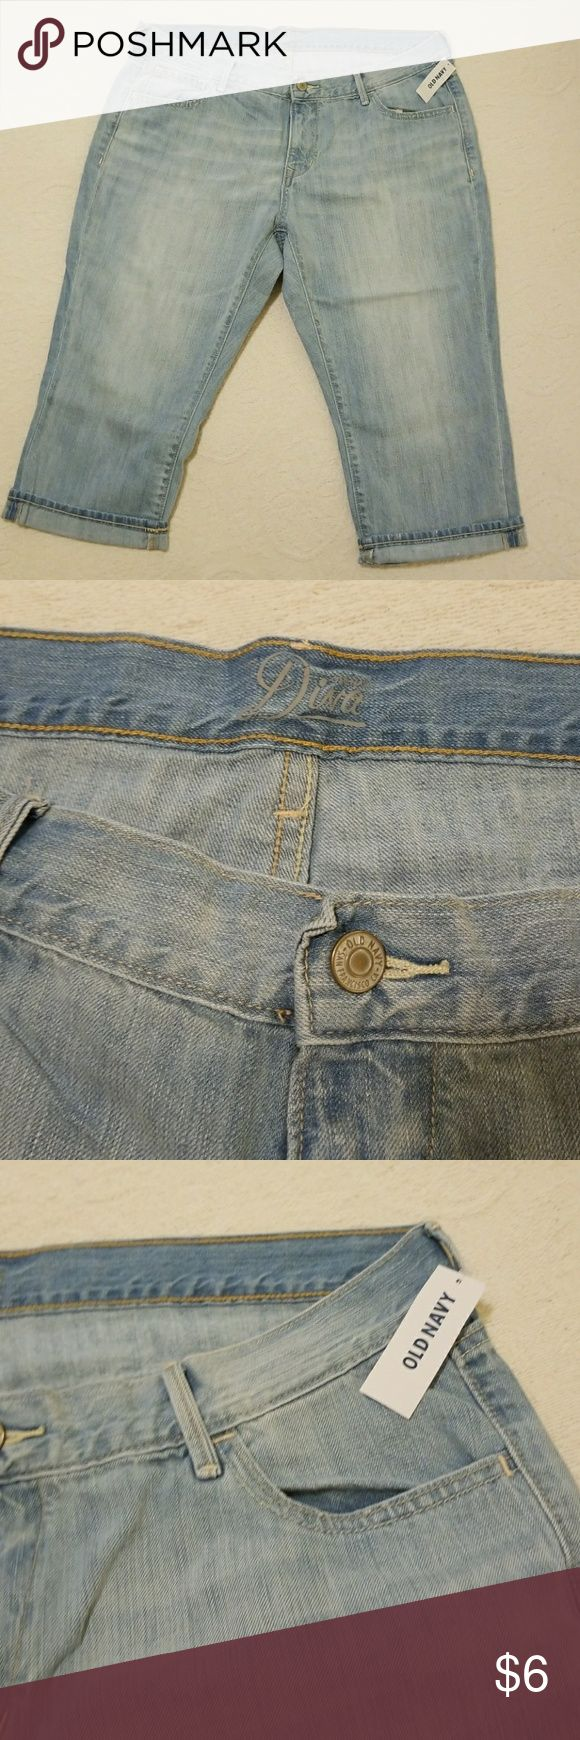 Woman's jean Capri/cropped/ my old navy size 16 A pair of women's old navy jean Capri/cropped.Style is diva . size 16 new with tags .Fabric 100% cotton . Old Navy Jeans Ankle & Cropped